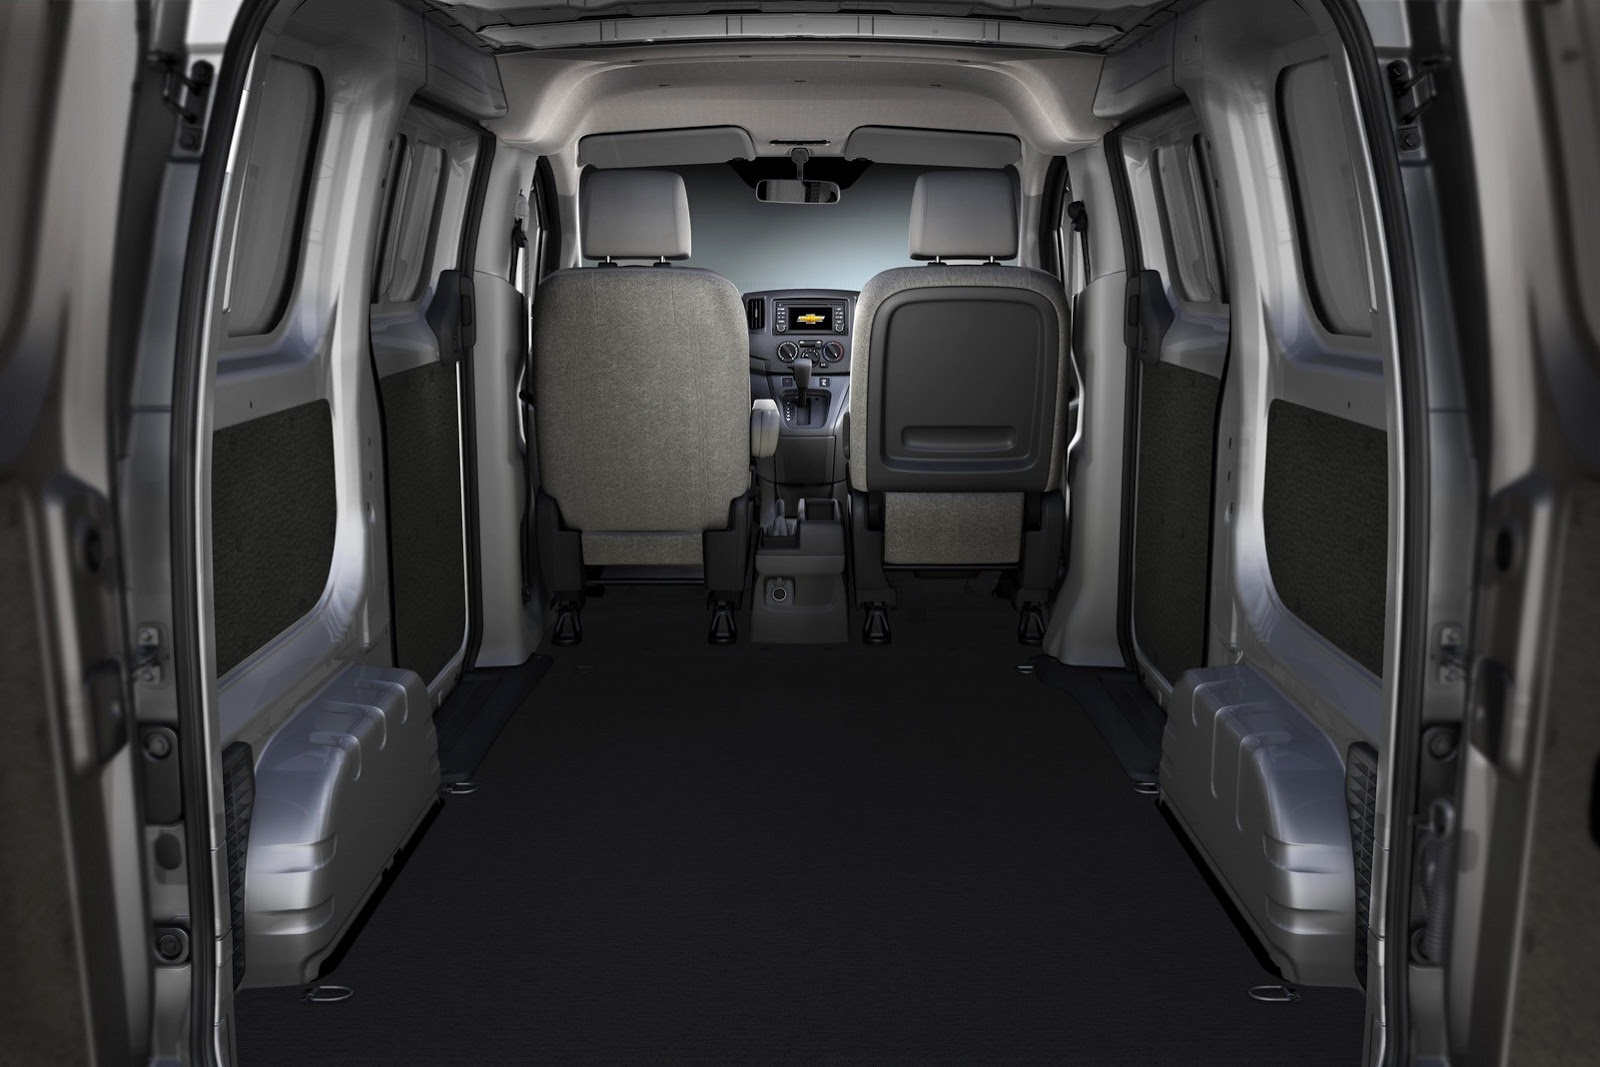 Chevrolet's 2015 City Express Is a Rebadged Nissan NV200 Van